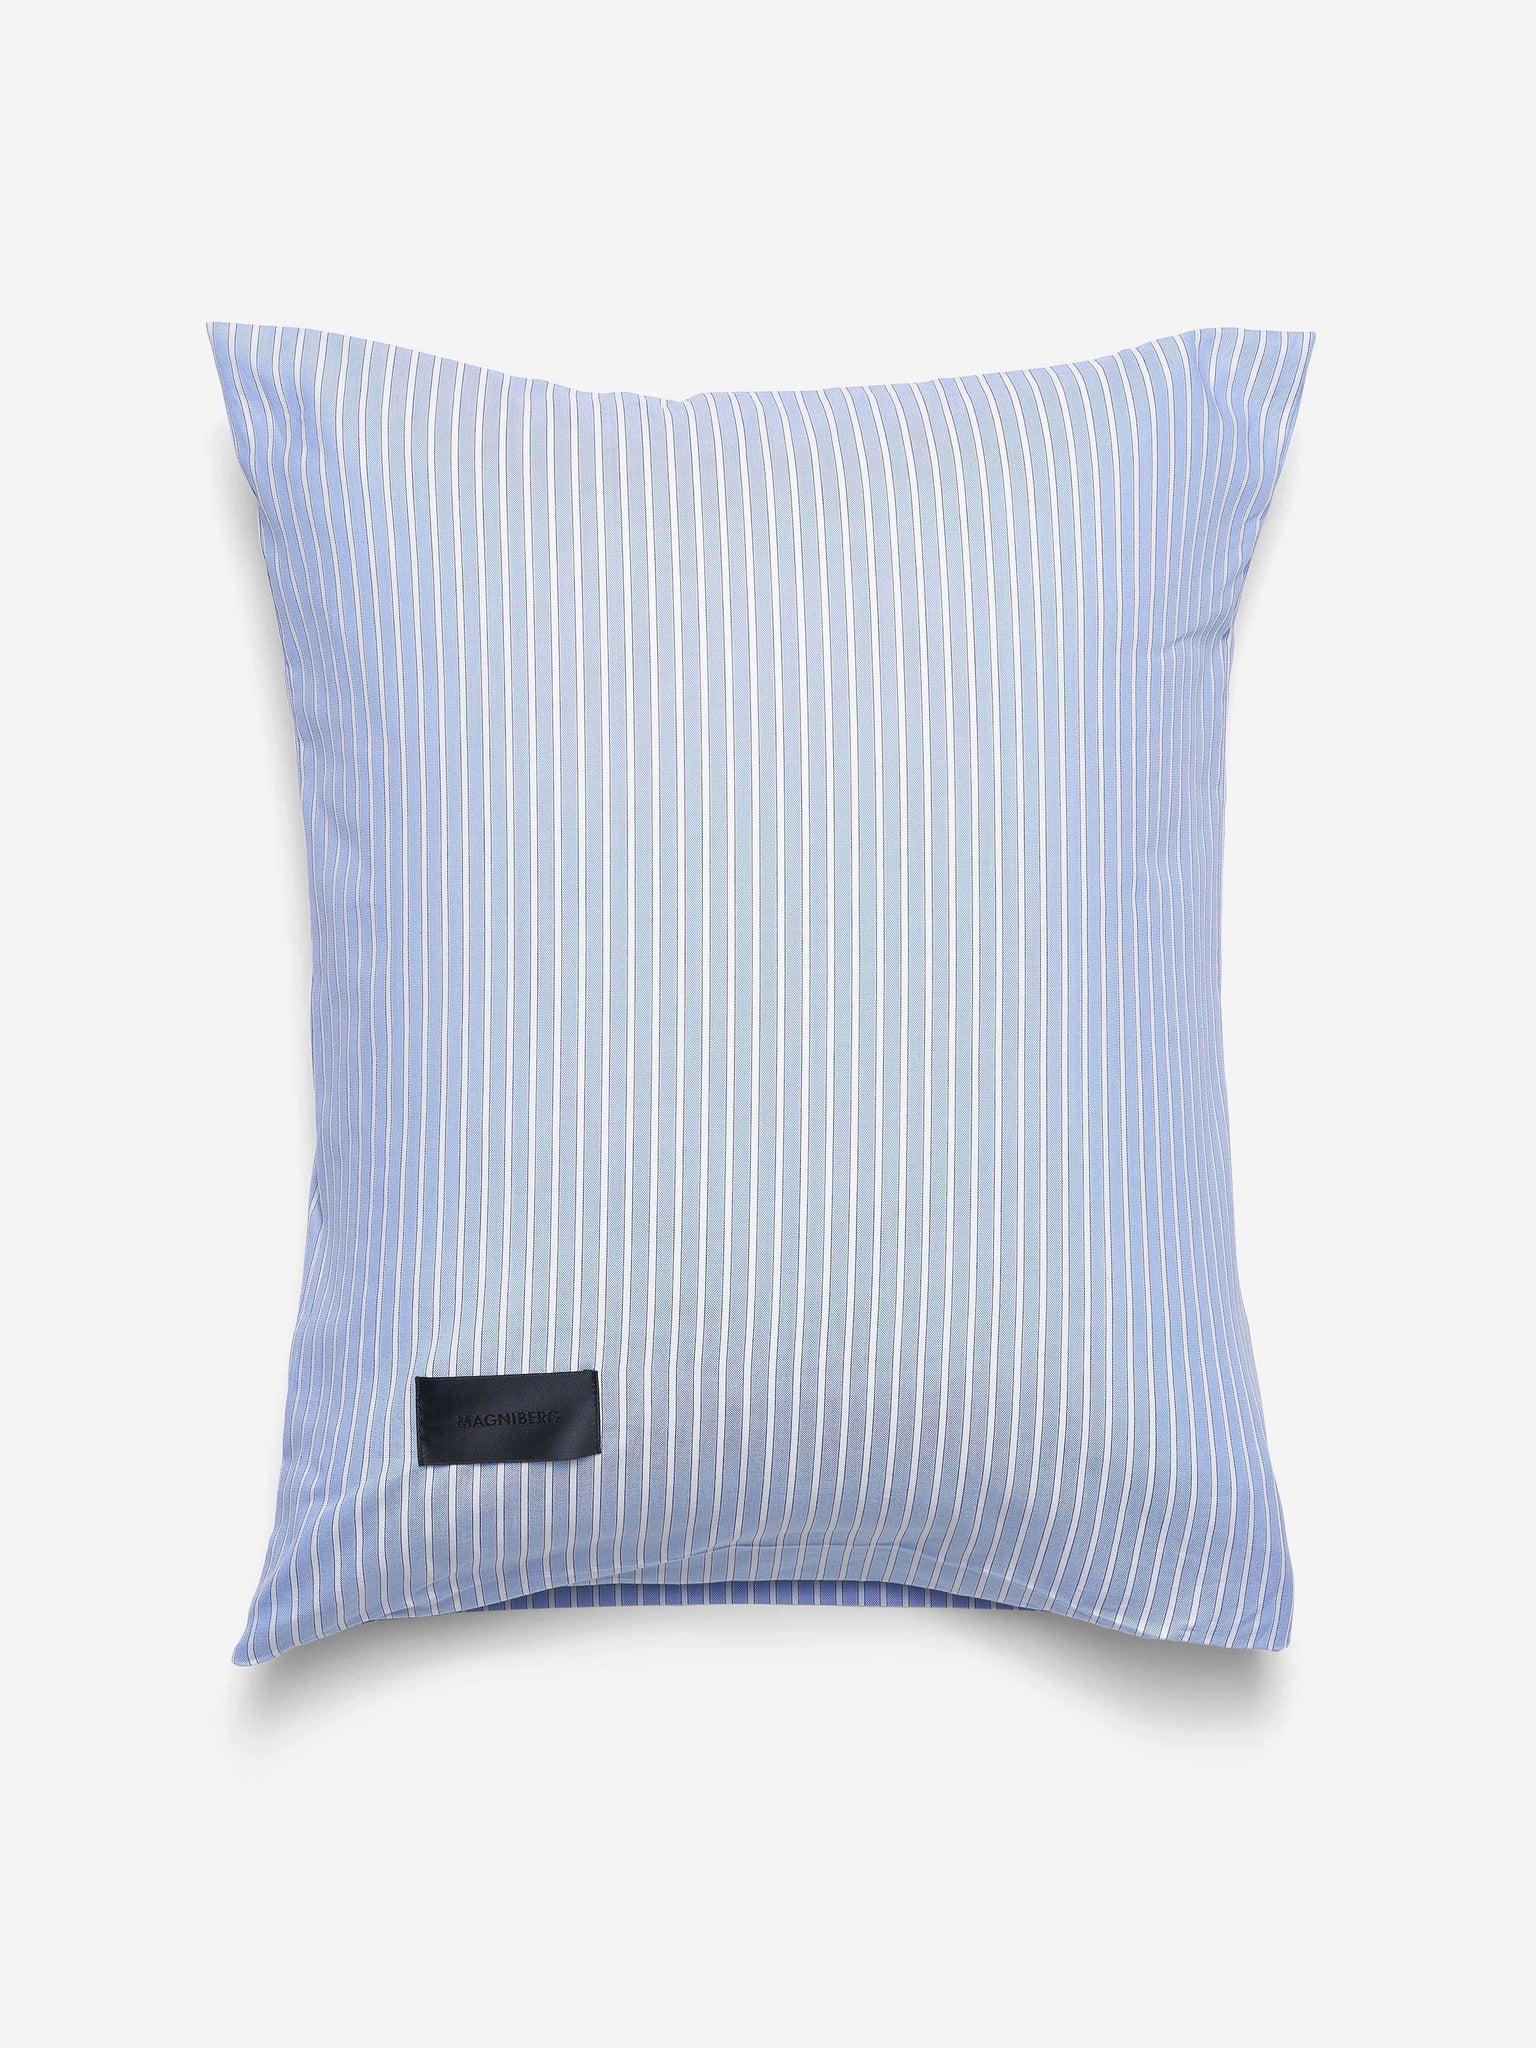 Magniberg Wall Street Oxford Pillow Case Stripe Light Blue